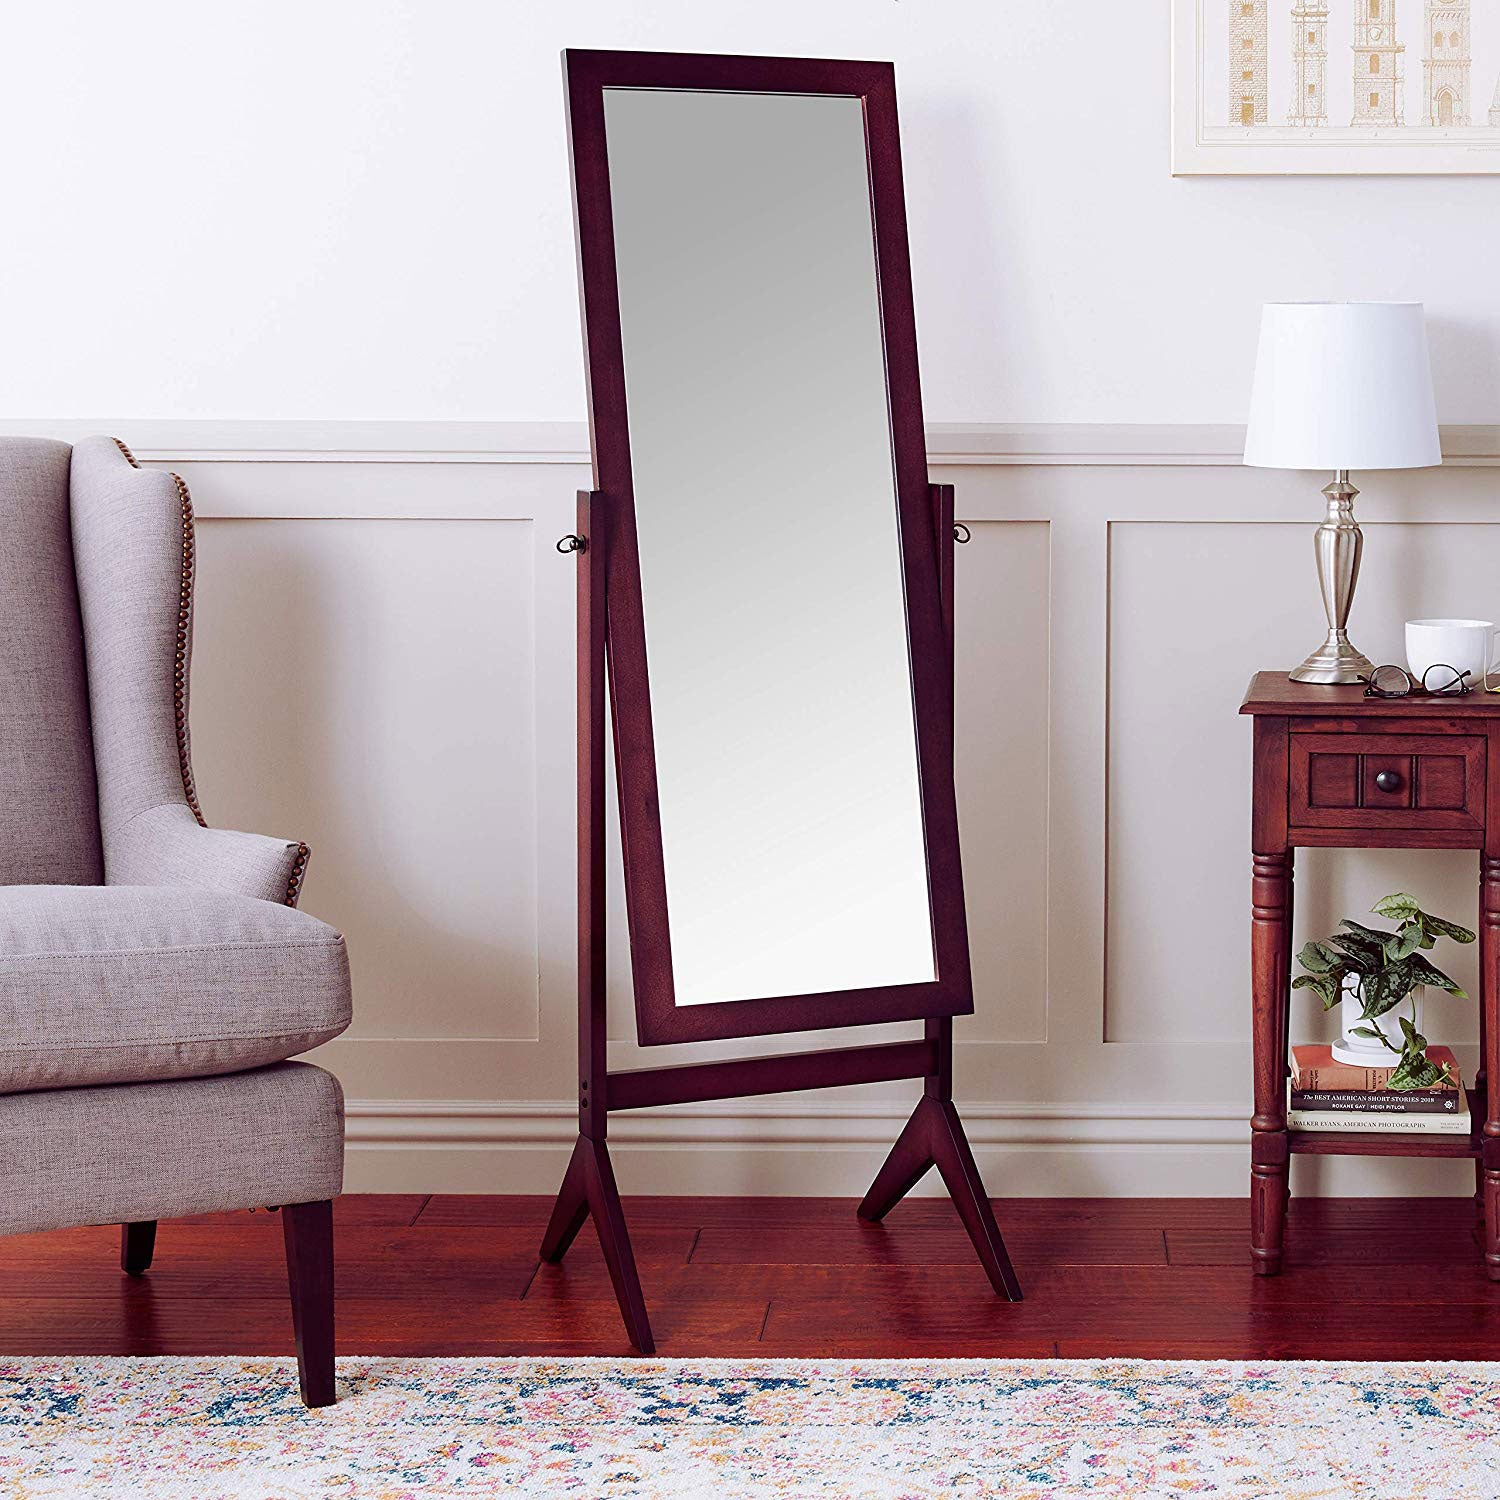 A large mirror in a bedroom.